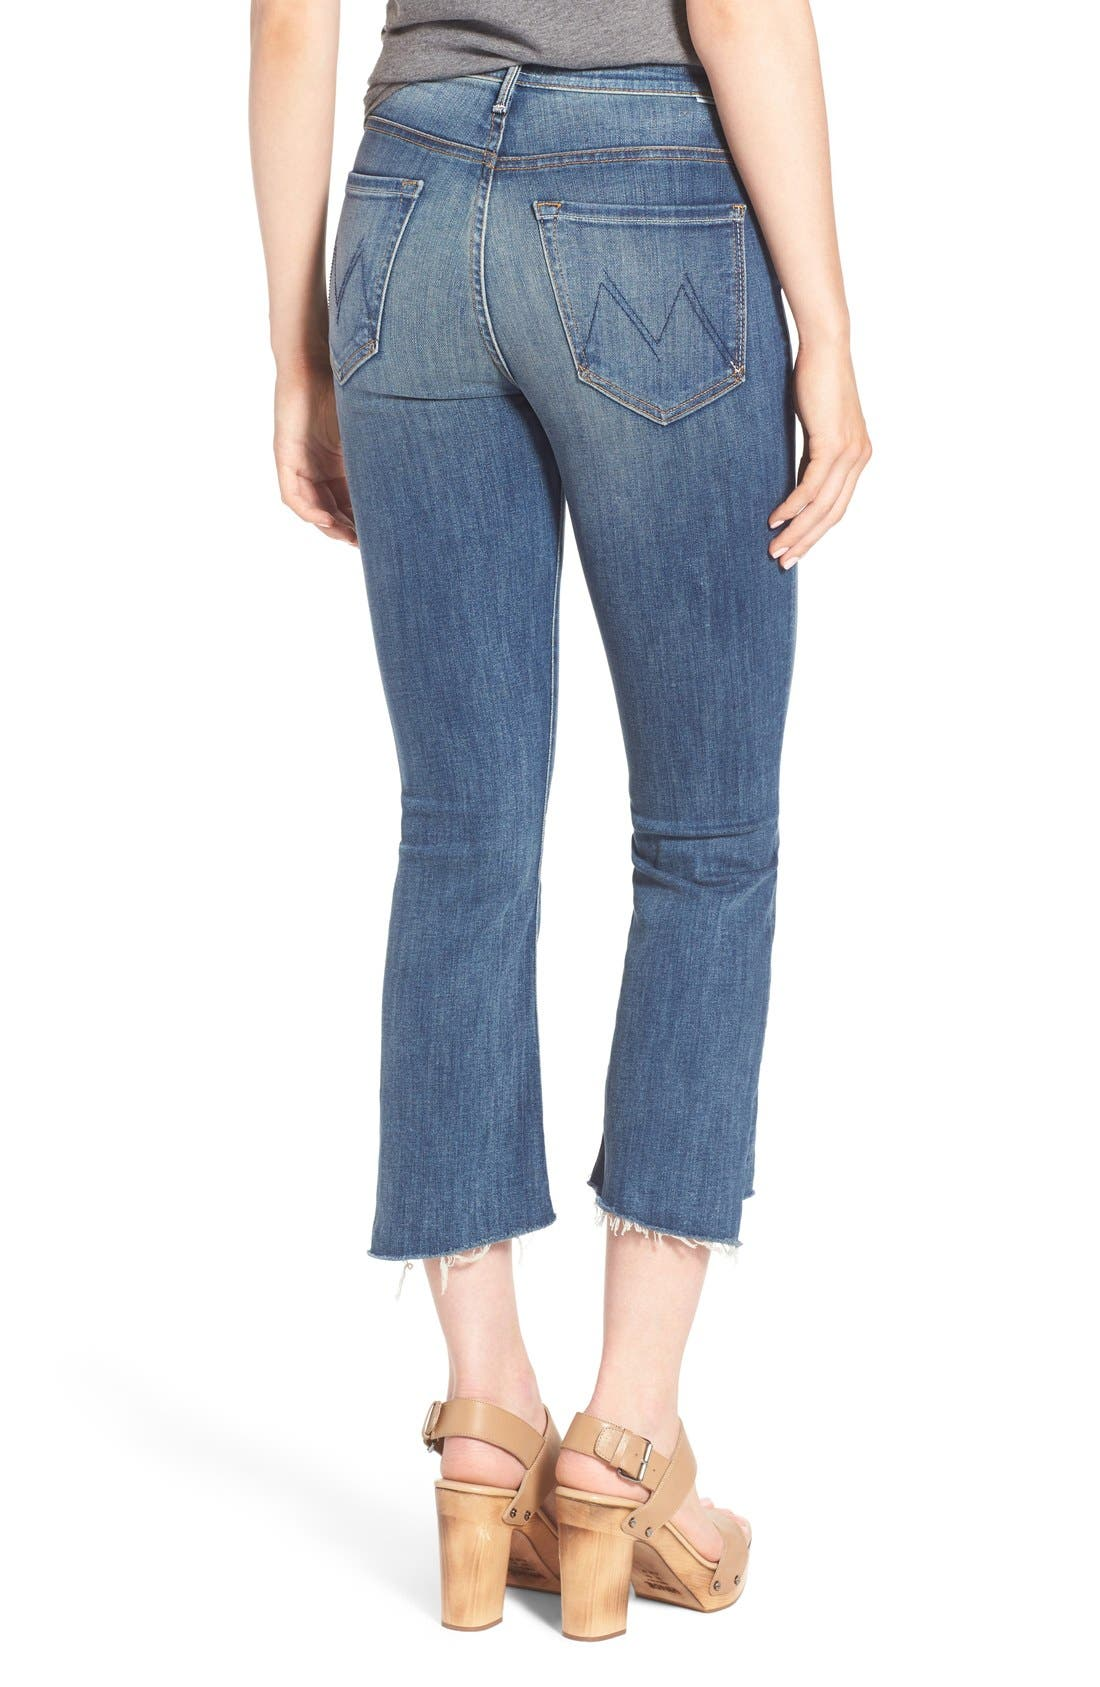 'The Insider' Crop Step Fray Jeans,                             Alternate thumbnail 3, color,                             420